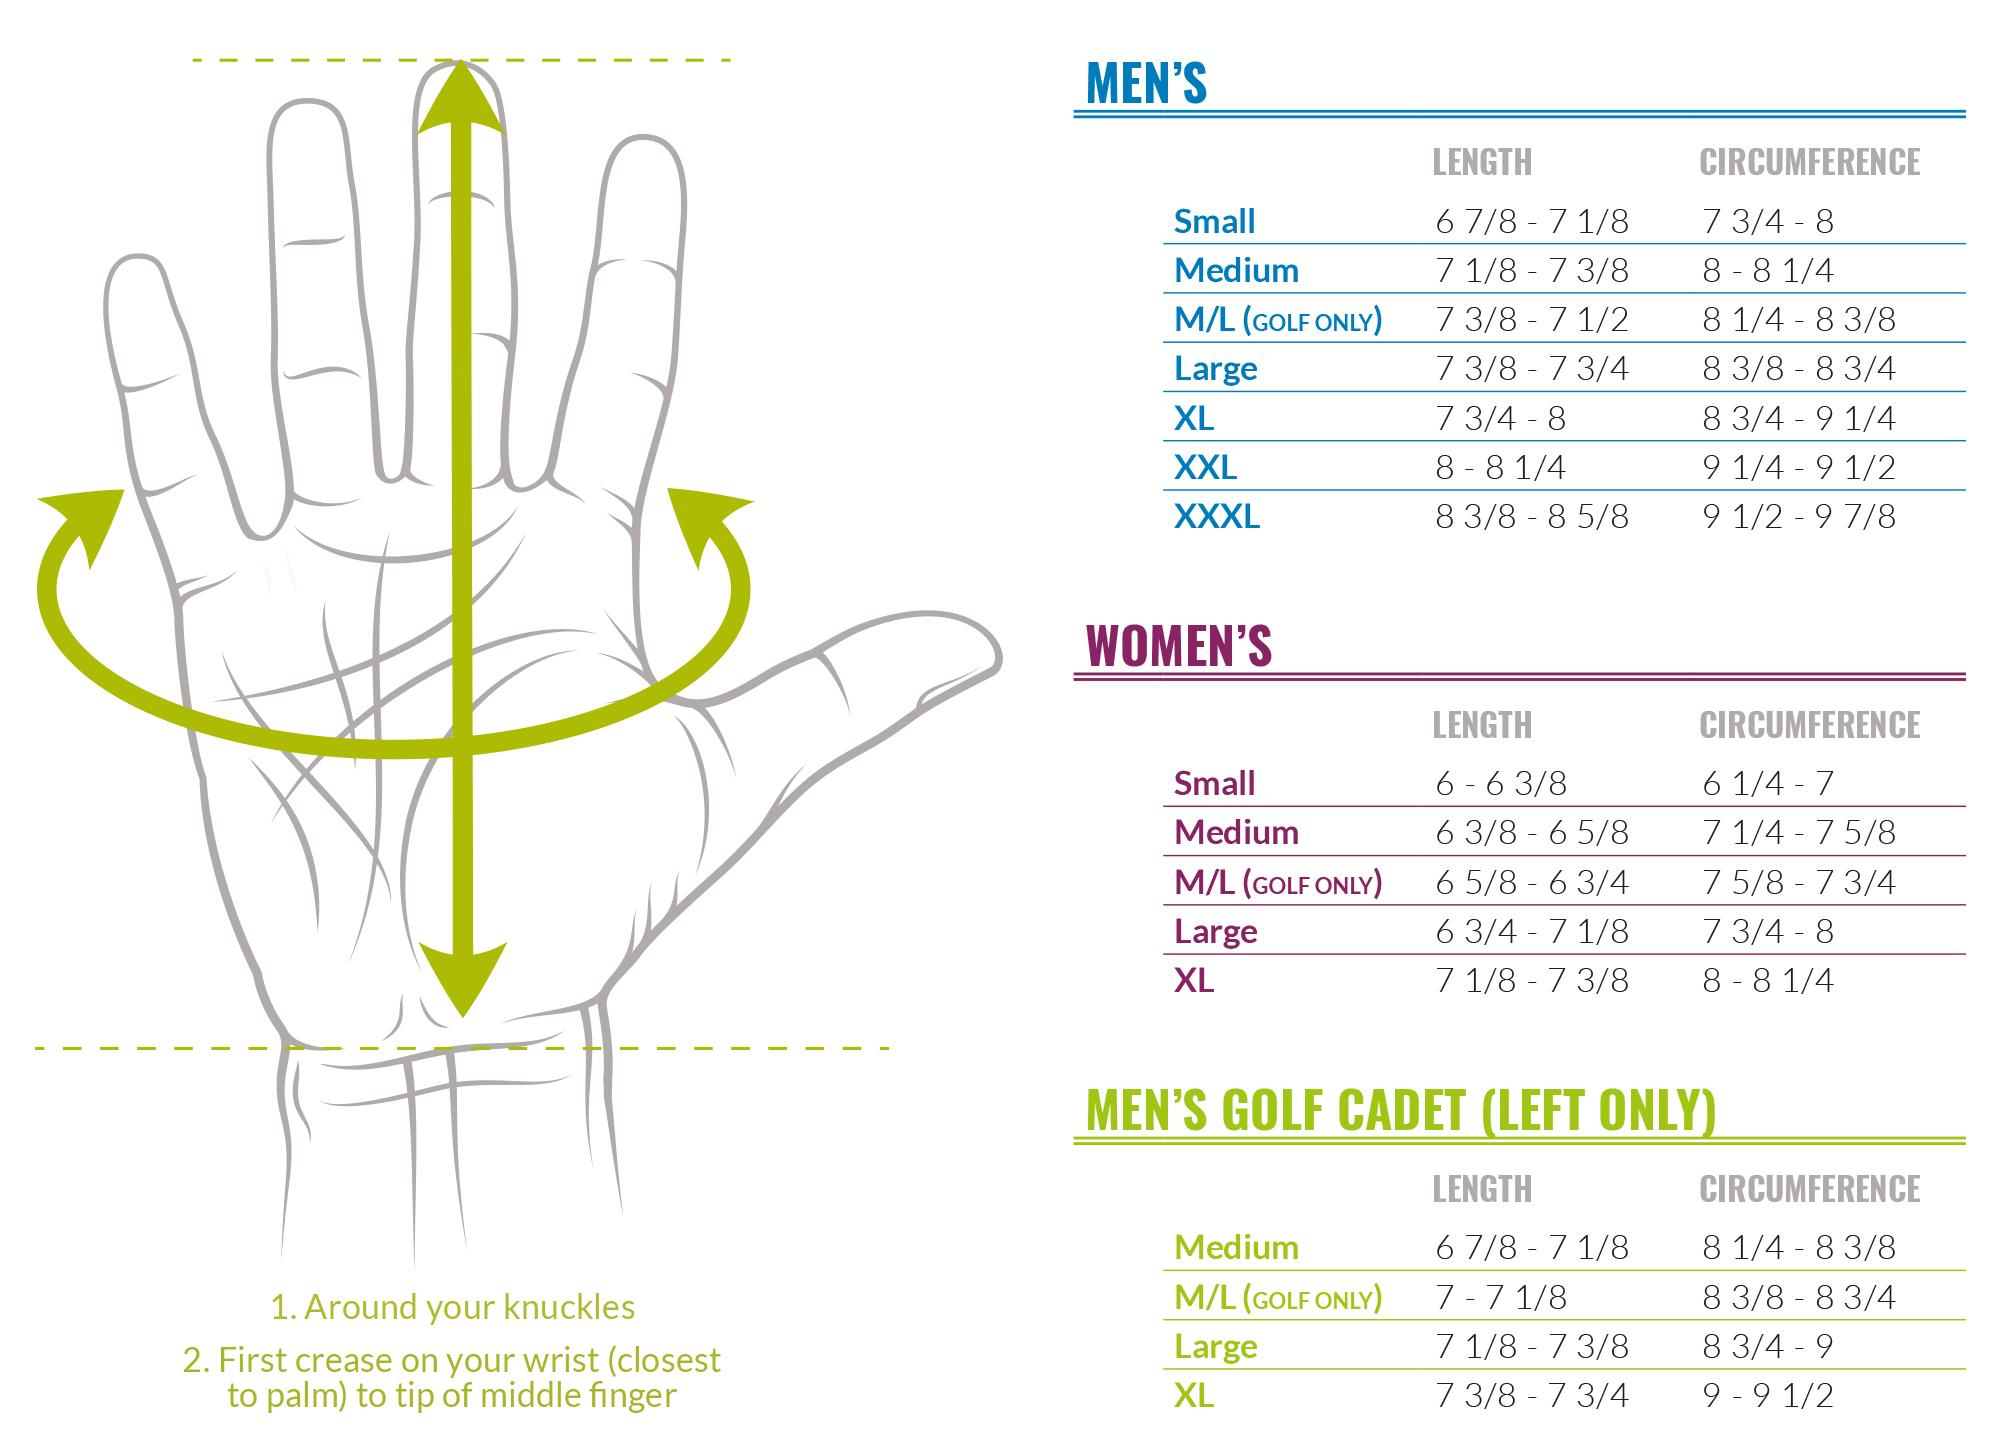 Bionic Gloves Sizing Guide